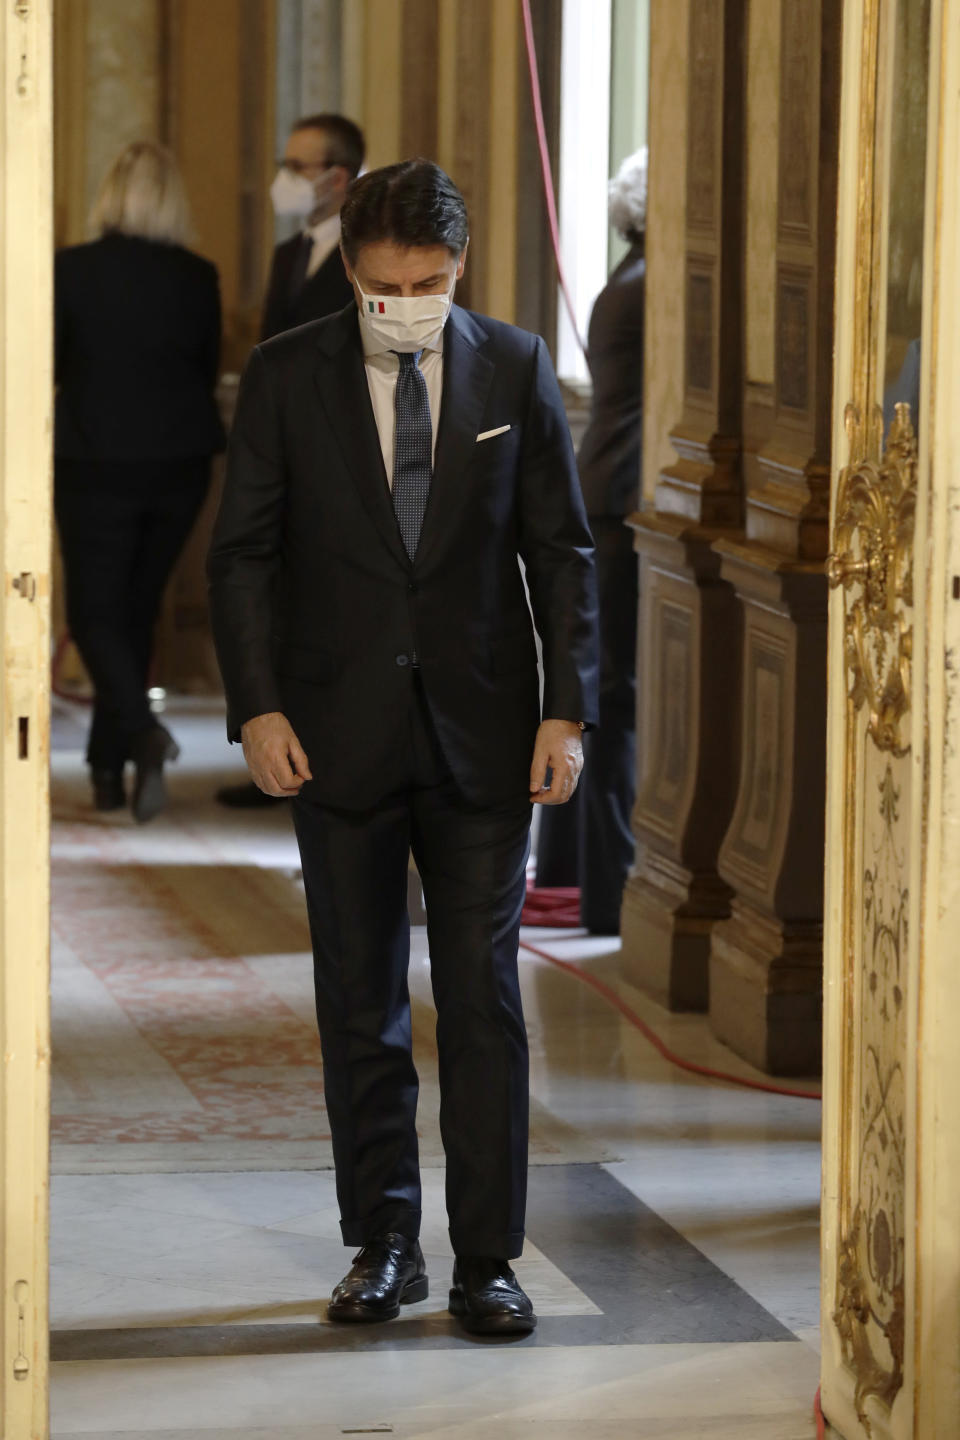 Italian outgoing Premier Giuseppe Conte arrives to hand over the cabinet minister bell to new Premier Mario Draghi, during the handover ceremony at Chigi Palace Premier's office, in Rome, Saturday, Feb. 13, 2021. (AP Photo/Andrew Medichini)